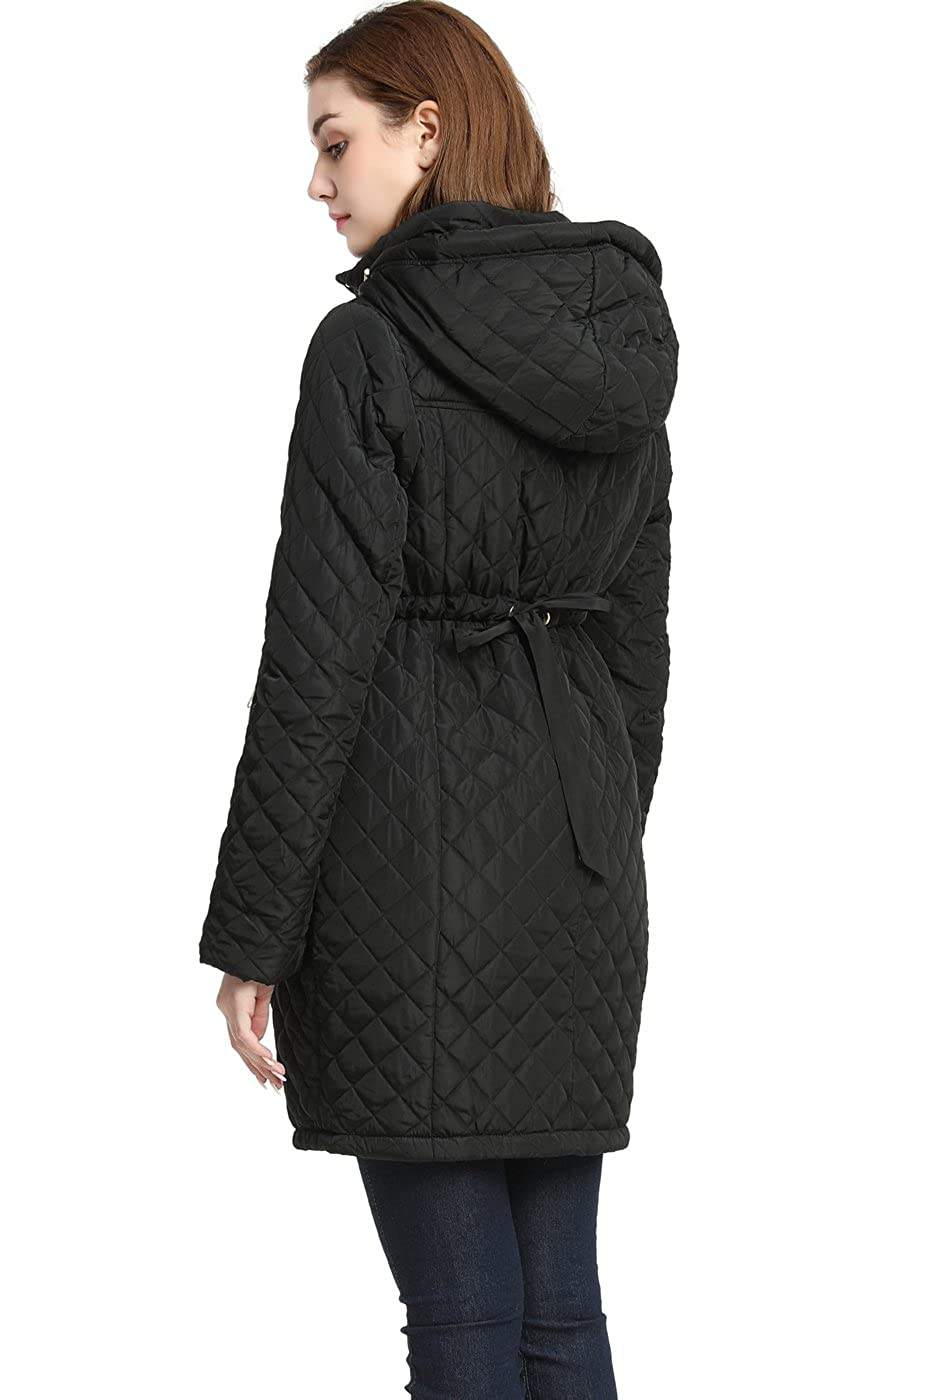 Momo Maternity Outerwear Womens Prue Quilted Parka Coat Pregnancy Winter Jacket